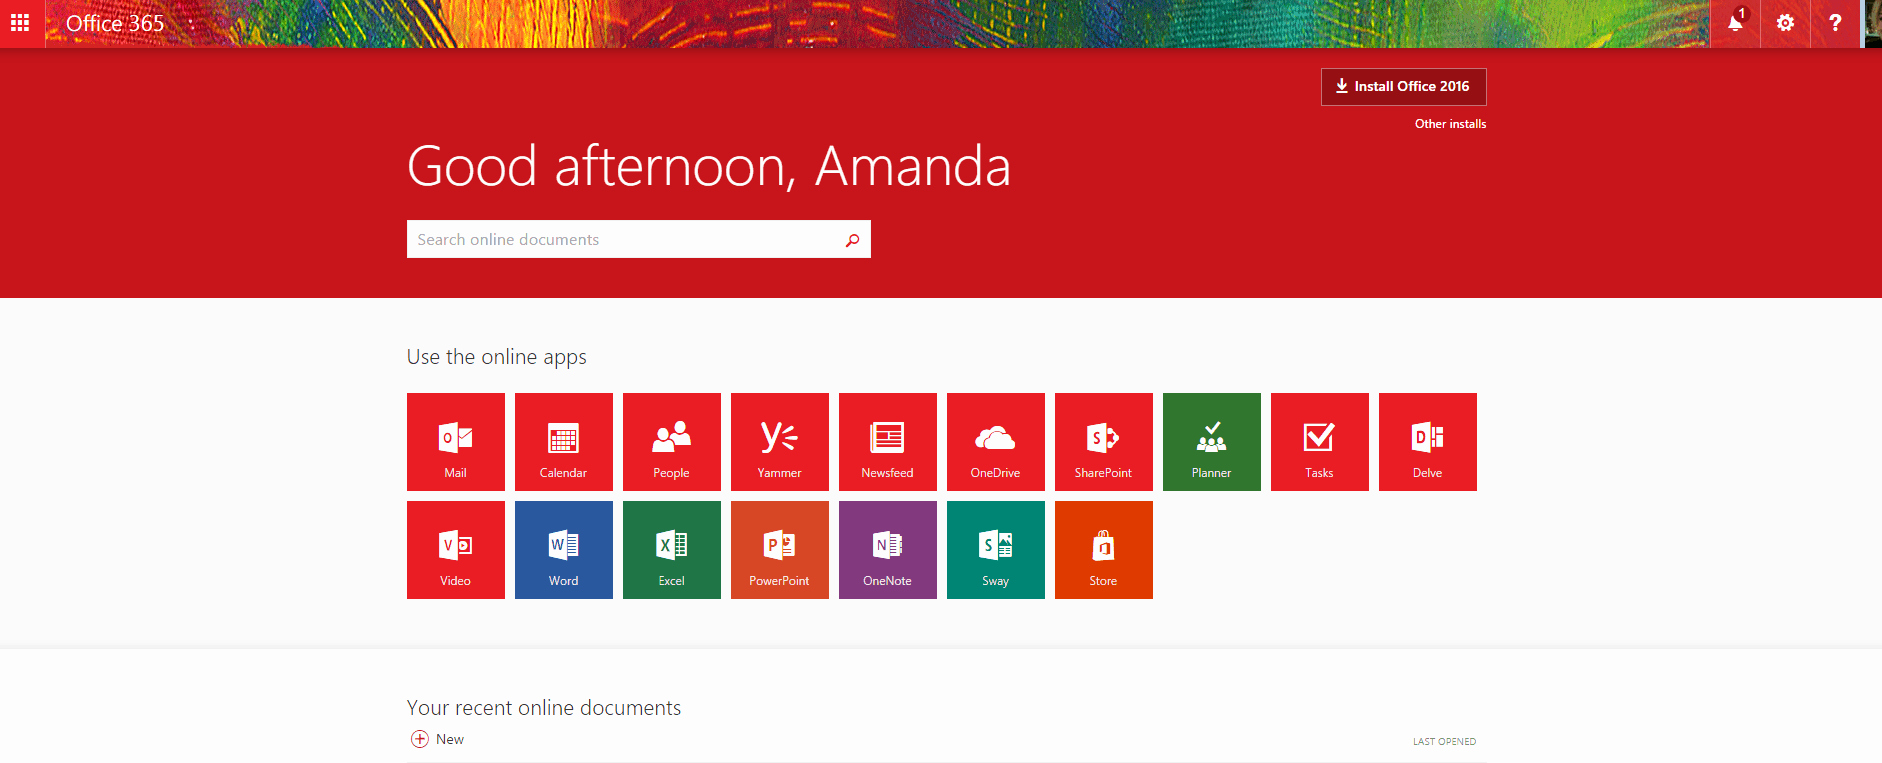 Ms Office 365 Sign In Beautiful How to Sign Into the Fice 365 Portal Business Puter